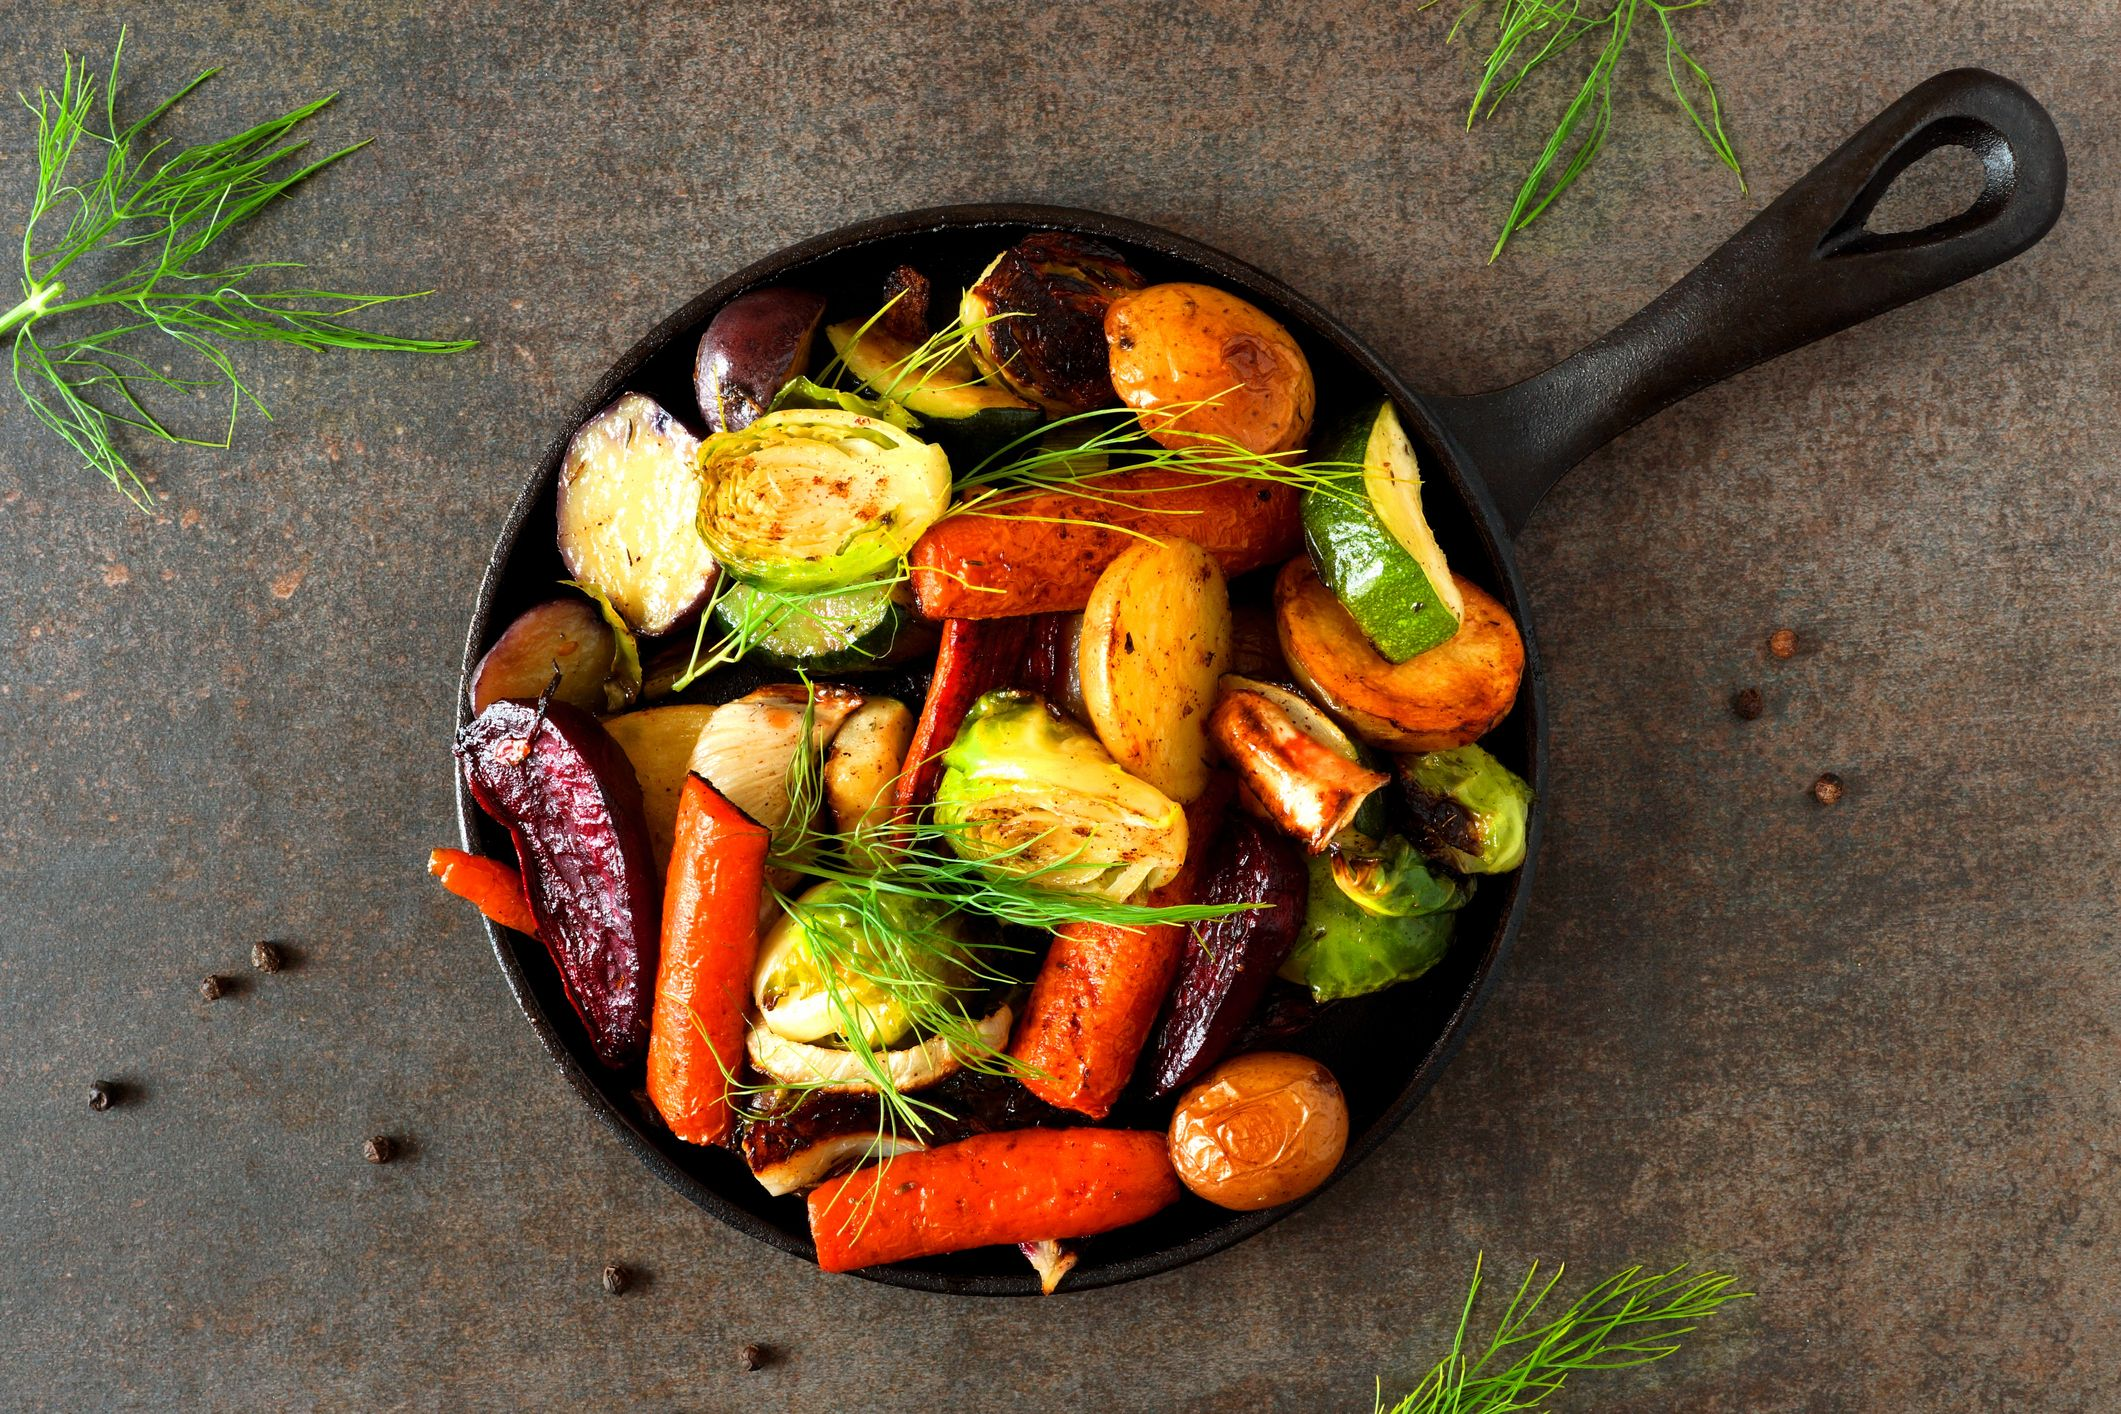 Scandinavian food is a competitor to the Mediterranean diet